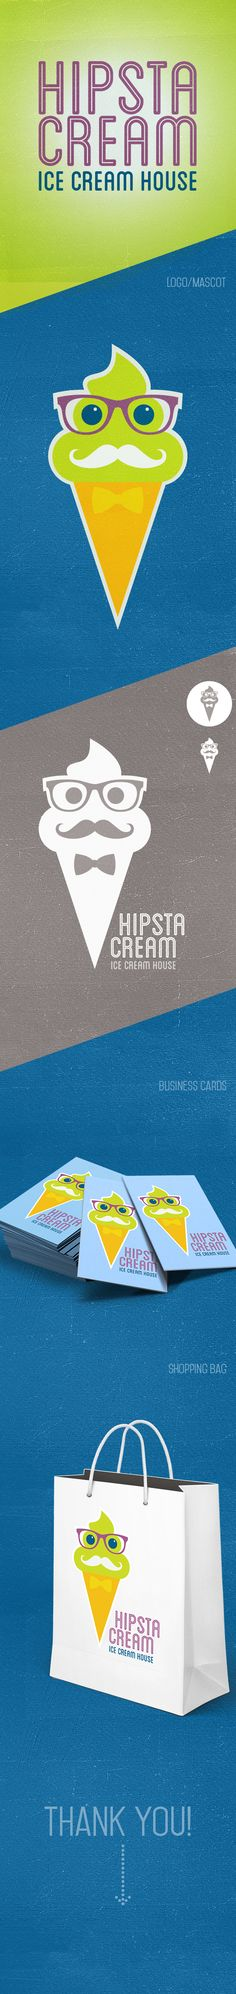 "Personal project for ice cream house called ""HipstaCream""."